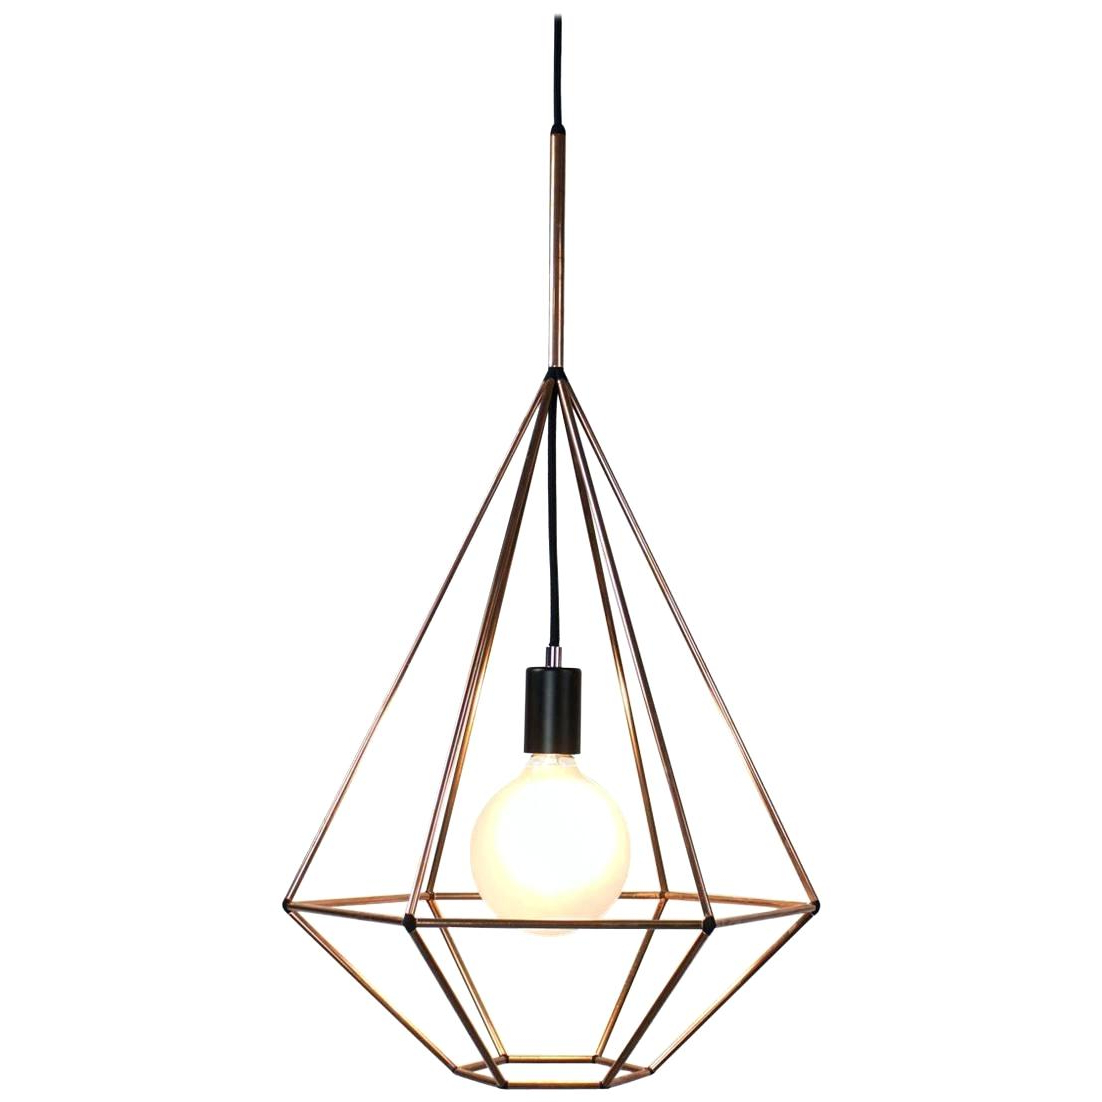 Widely Used Nisbet 6 Light Lantern Geometric Pendants Regarding Geometric Pendant Light – Soccerflash (View 19 of 25)